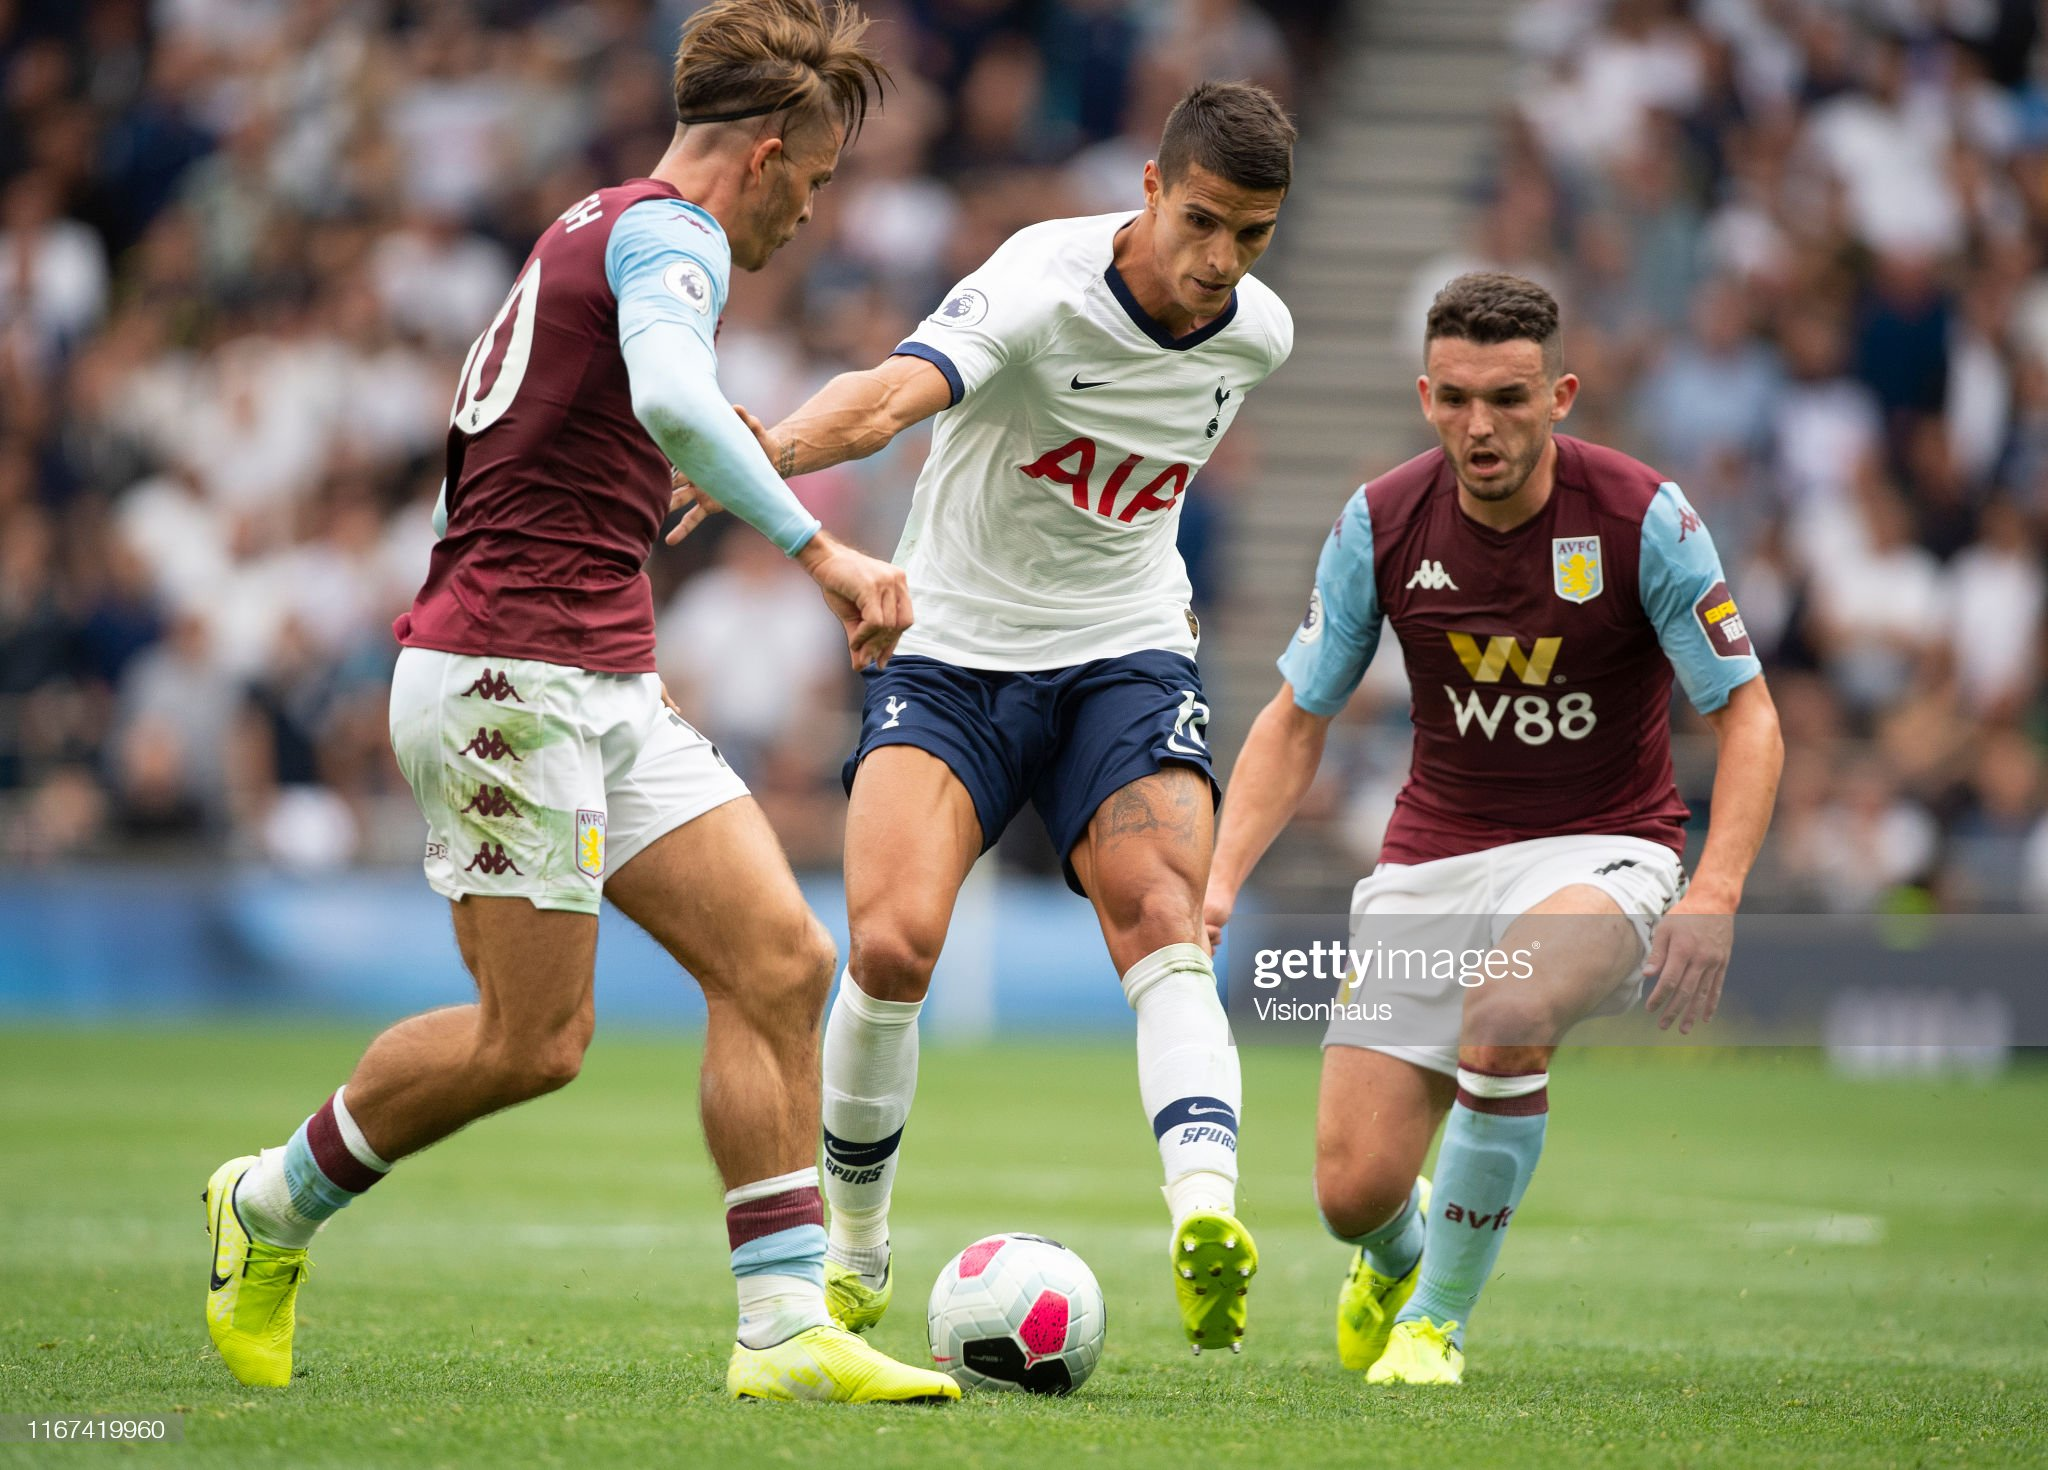 Aston Villa v Tottenham preview, prediction and odds